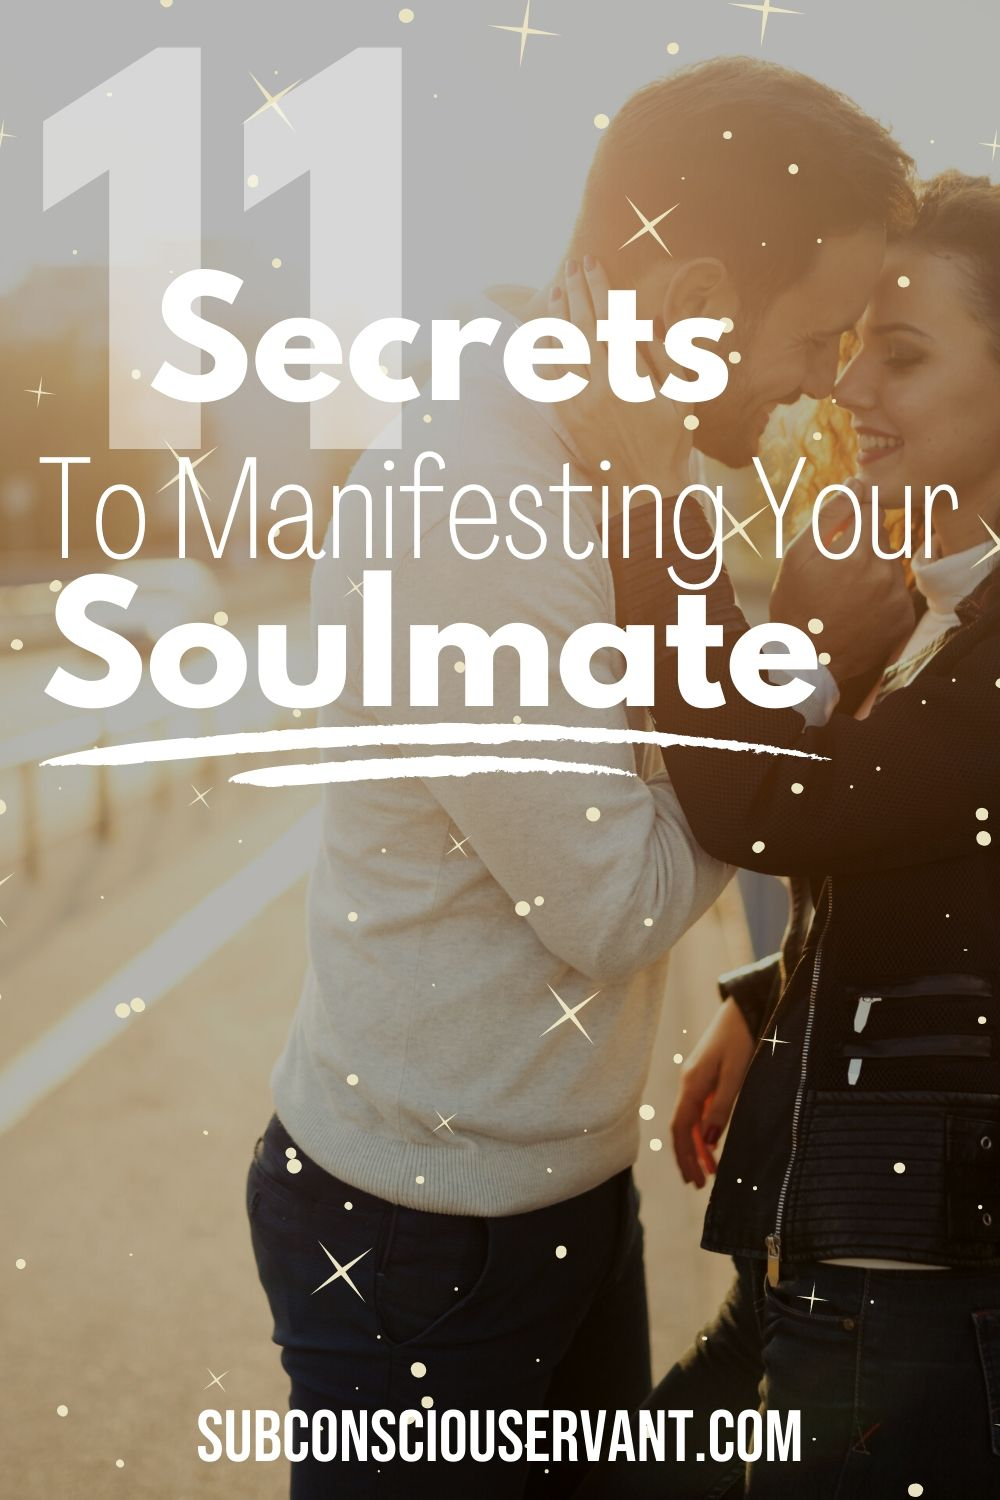 How To Manifest Your Soulmate - 11 Secrets You Must Know